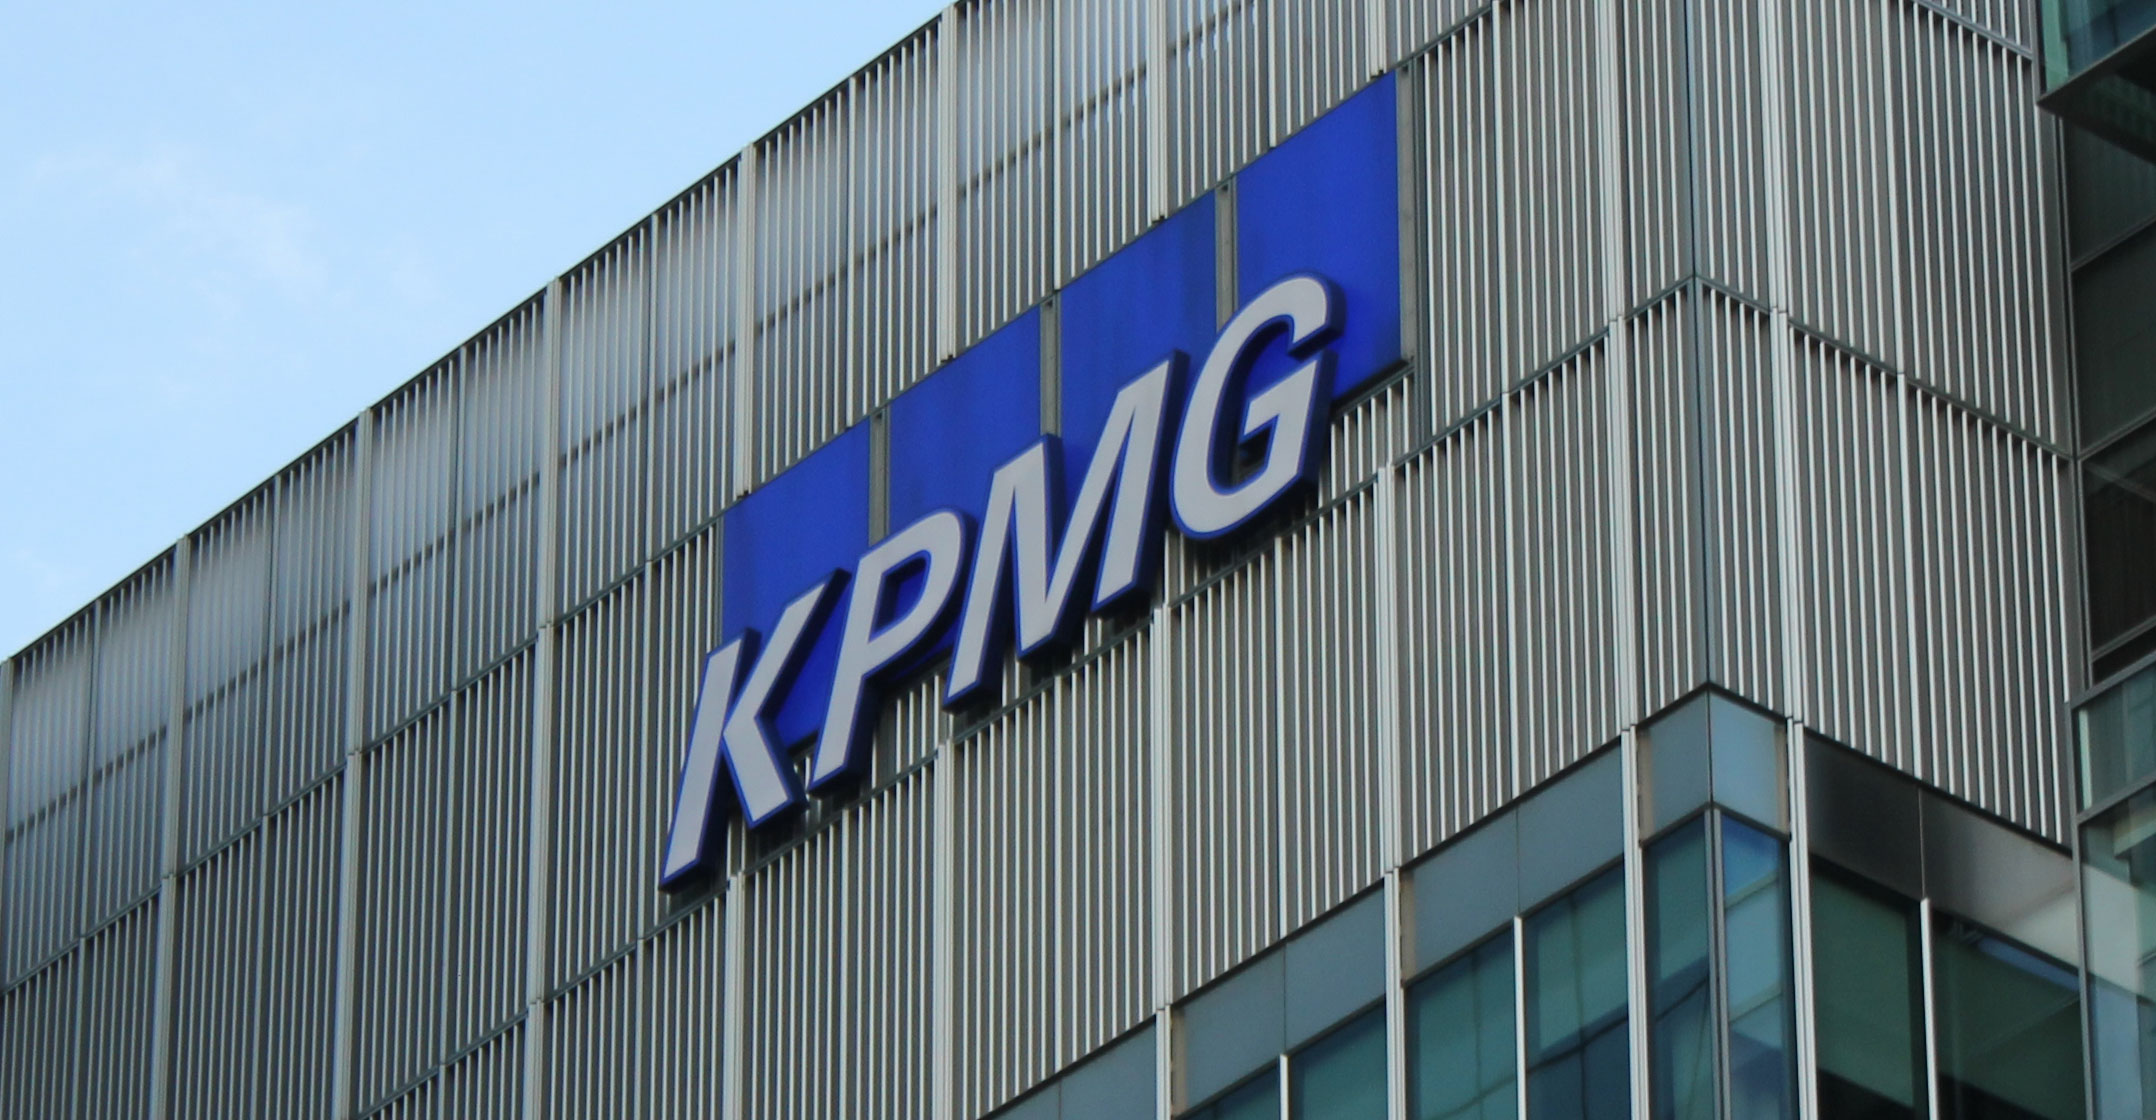 KPMG South Africa chiefs resign over Gupta links